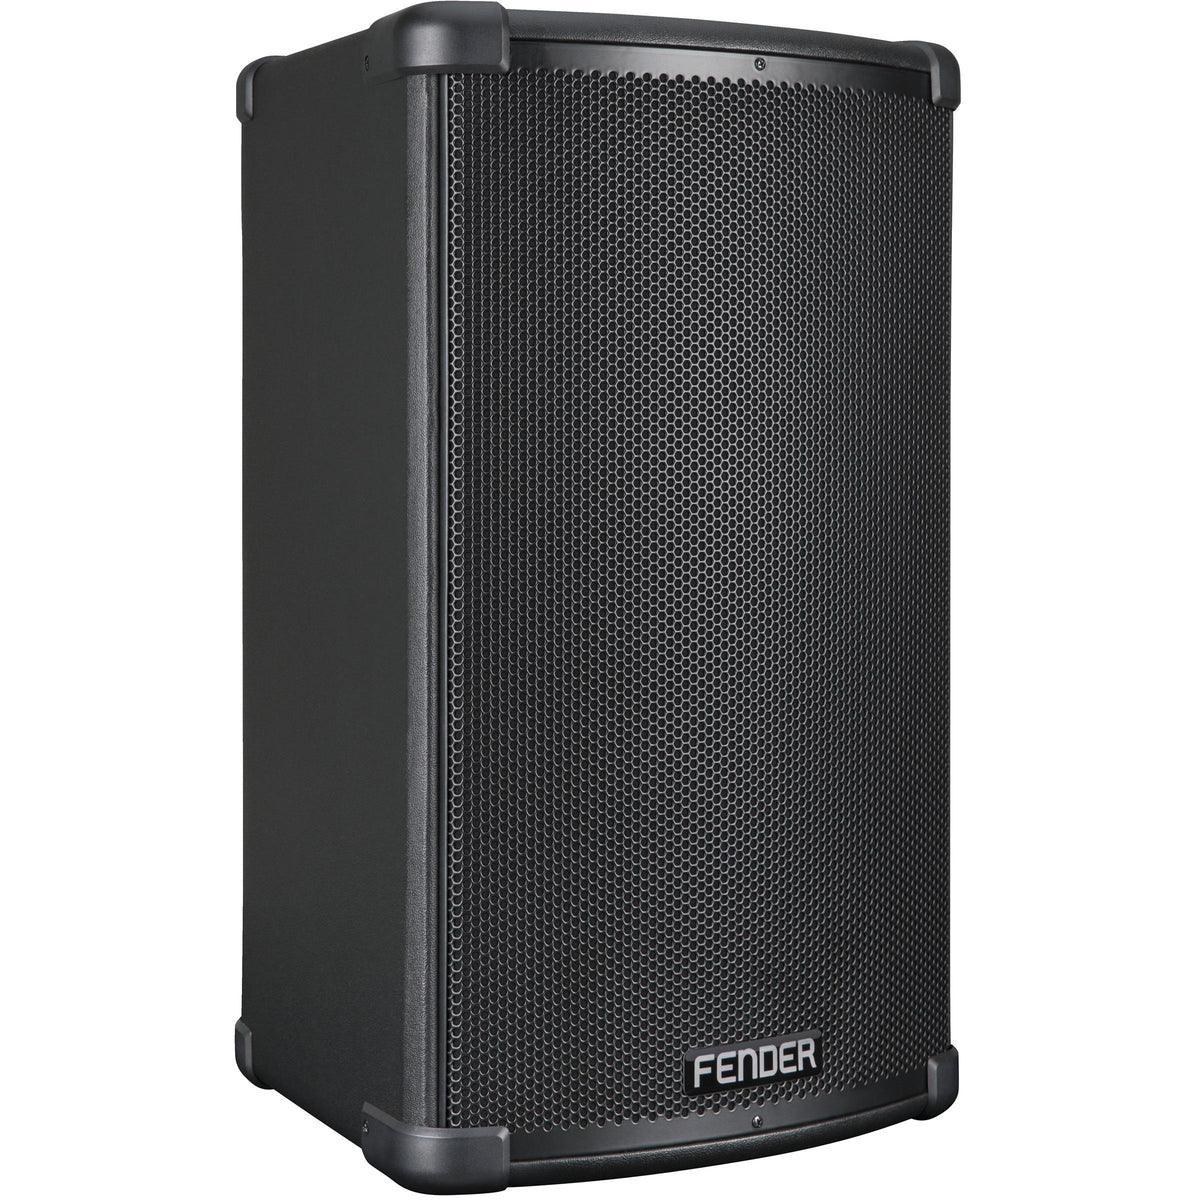 Fender Fighter 12 2-Way Powered Speaker